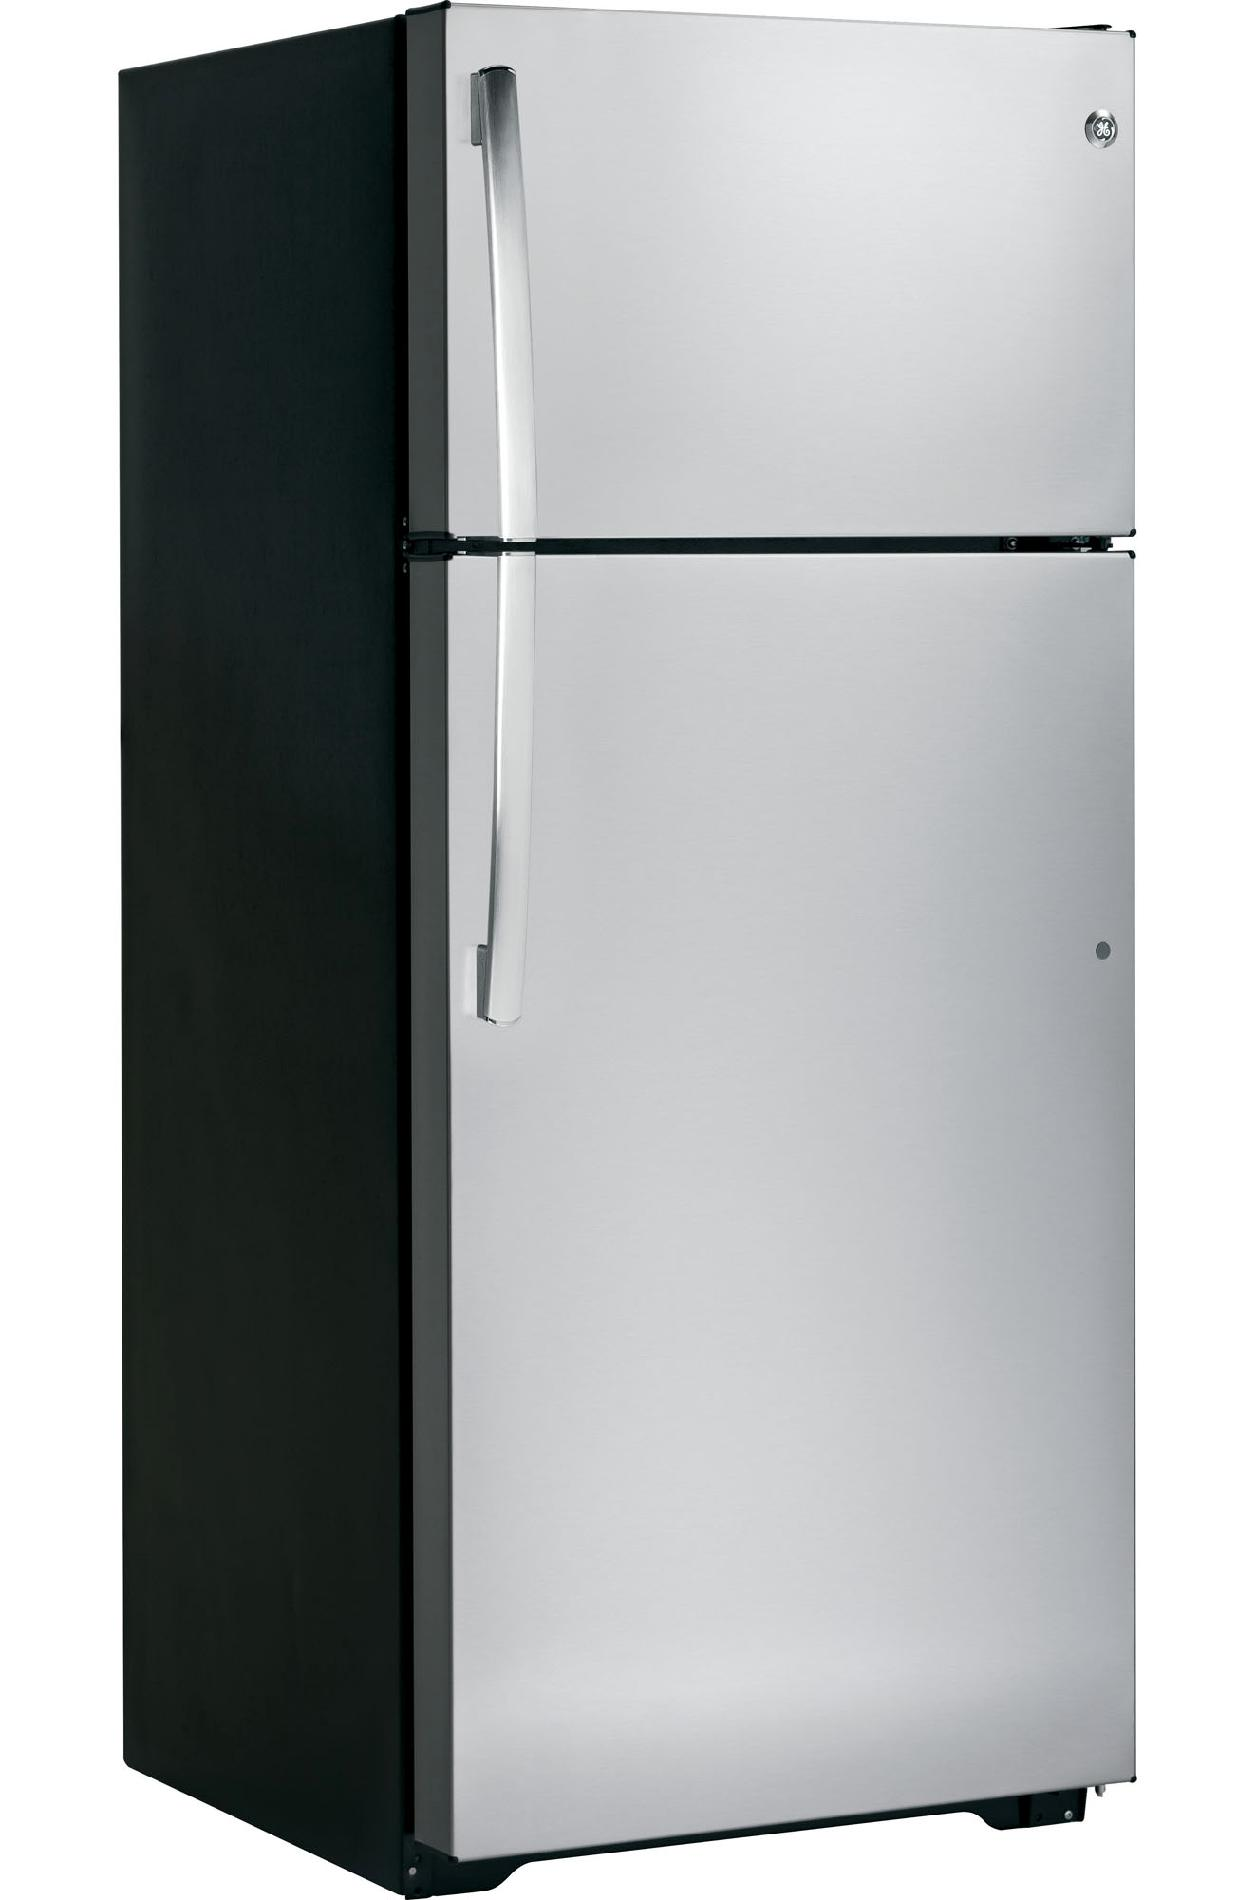 GE 18.1 cu. ft. Top-Freezer Refrigerator w/ Ice Maker - Stainless Steel